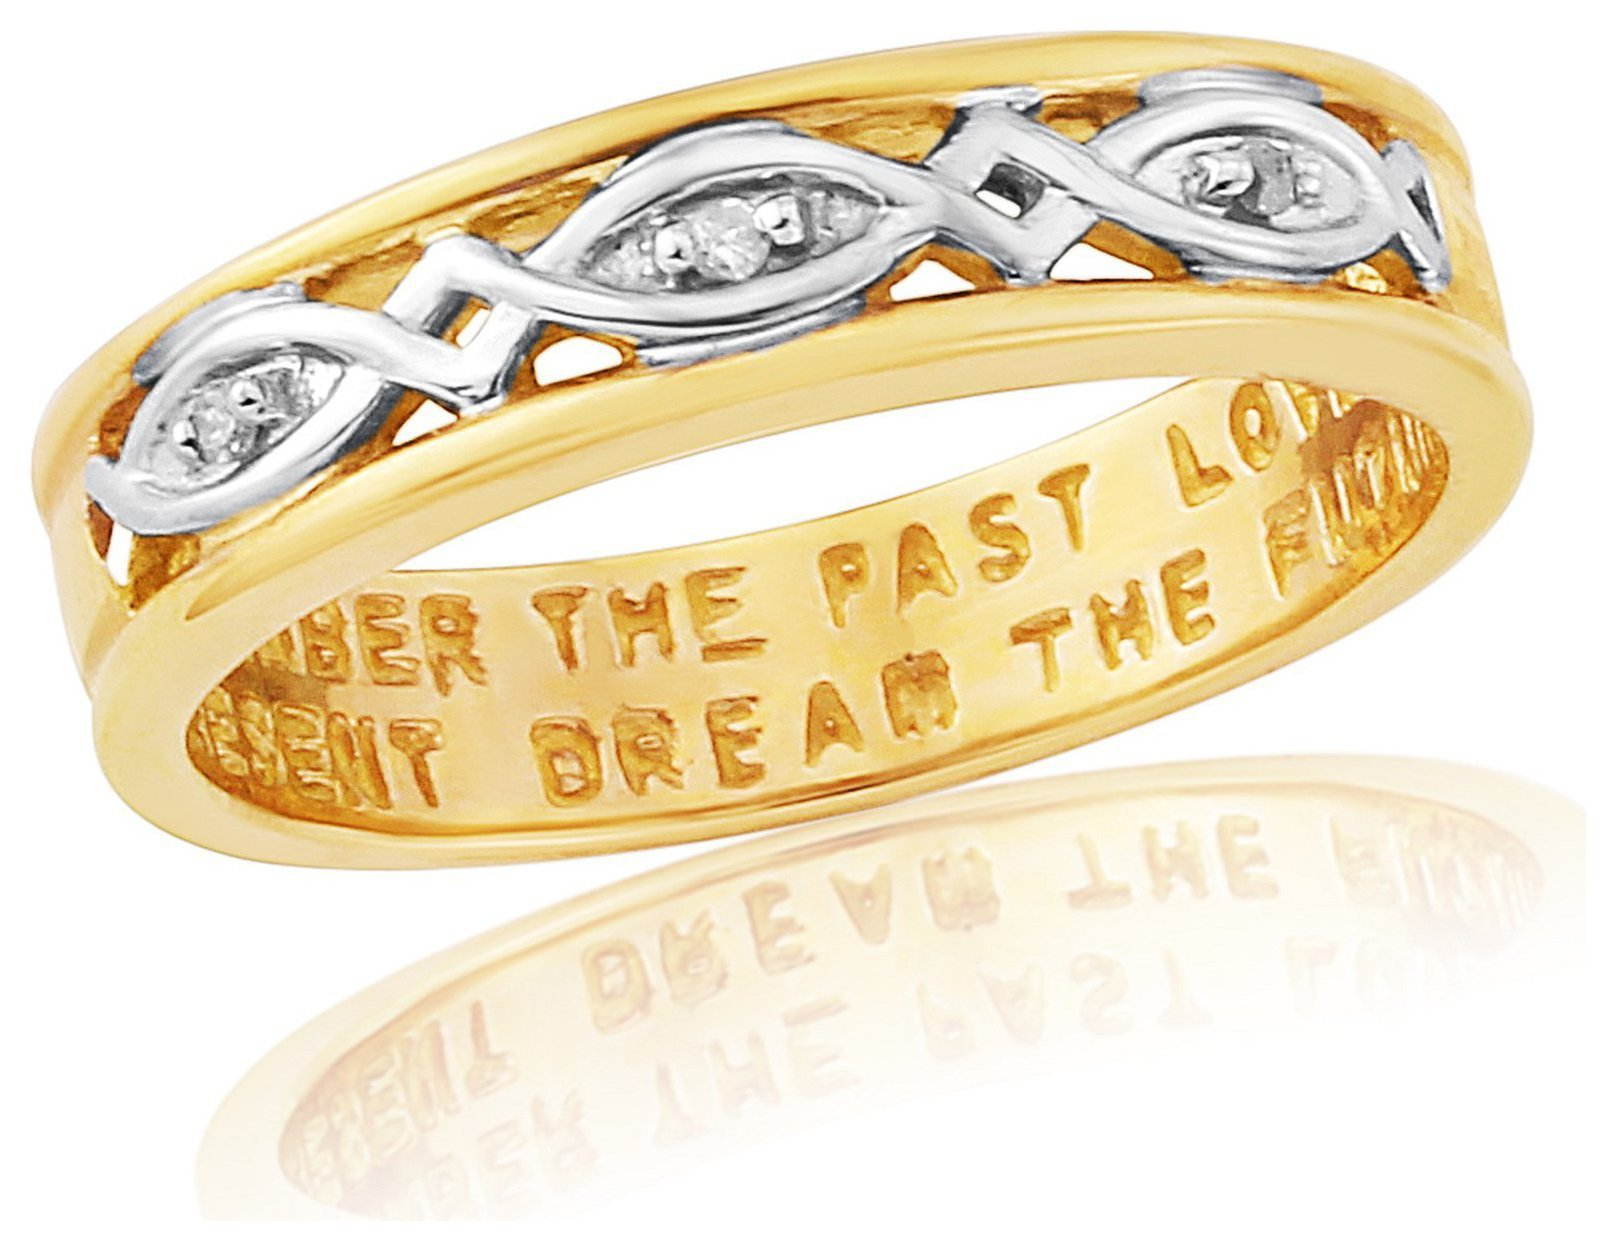 Buy 9ct Gold Plated Sterling Silver La s mitment Ring L at